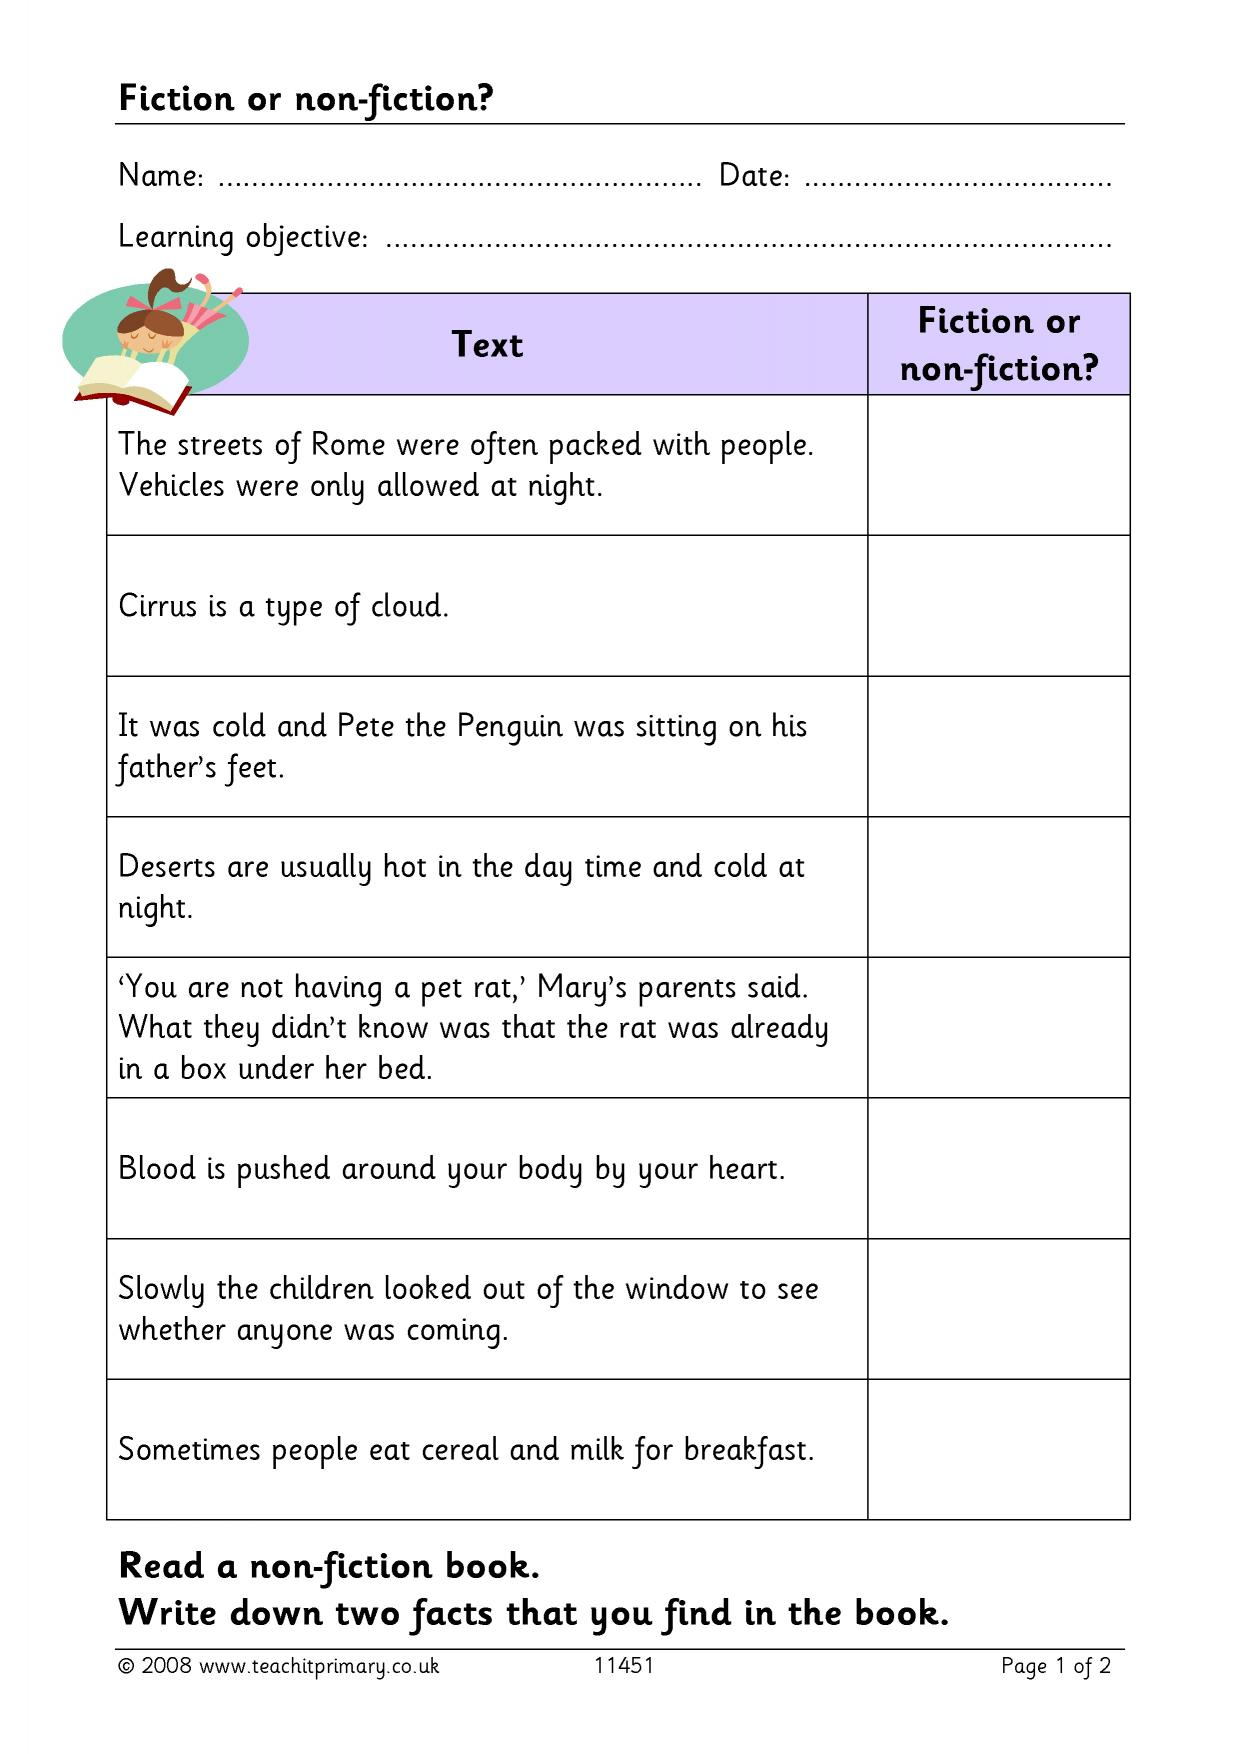 What are fiction and non-fiction?